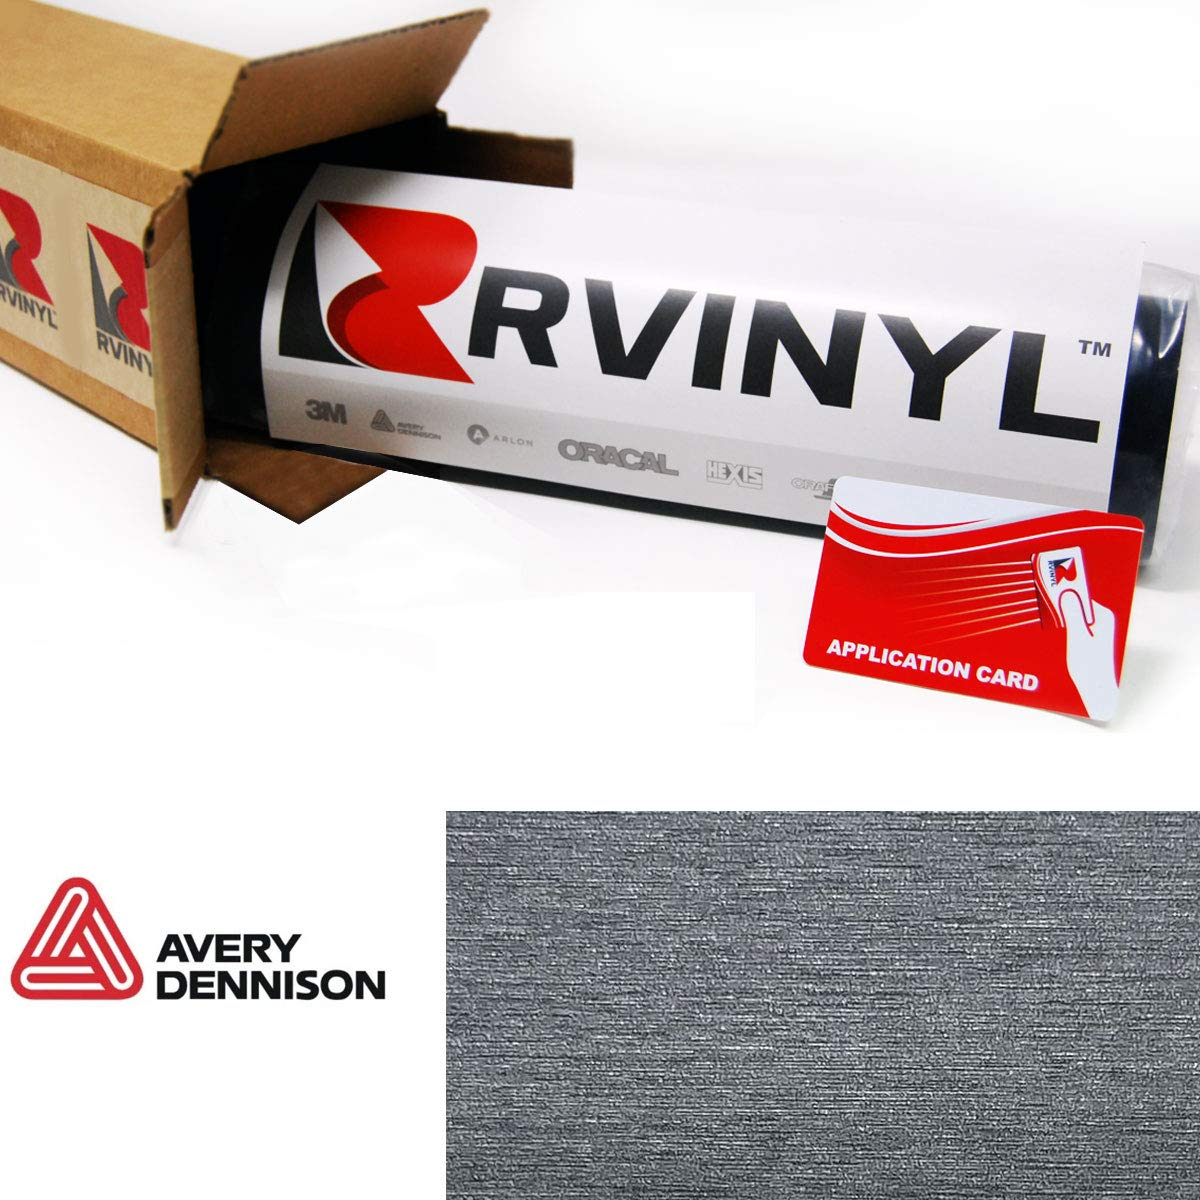 12 x 60 w//Application Card Avery SW900 802-X Brushed Titanium Supreme Wrapping Film Vinyl Vehicle Car Wrap Sheet Roll C-Avery-SW900-802-X